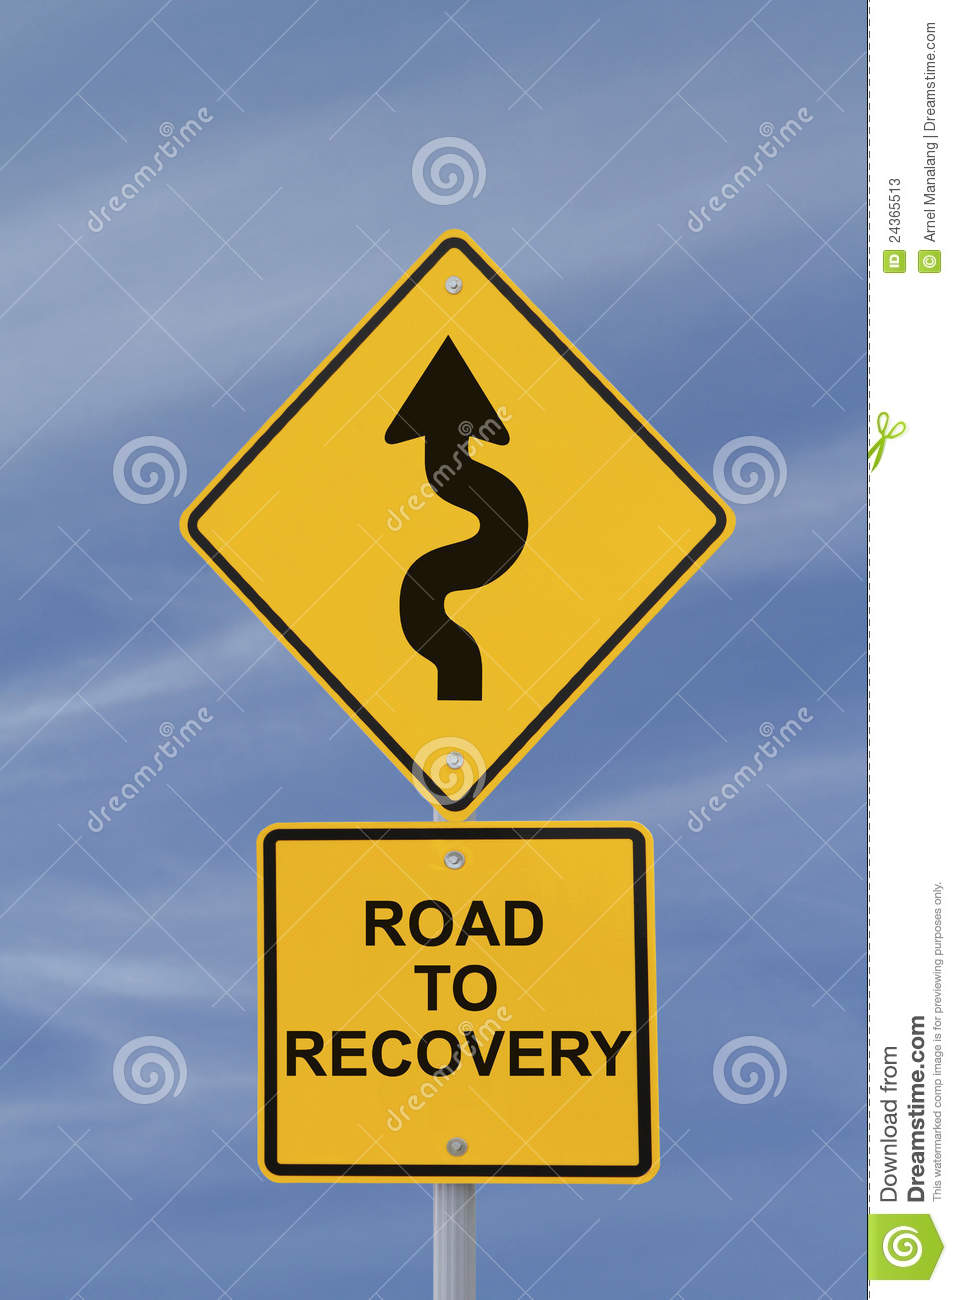 Road To Recovery Stock Photos - Image: 24365513